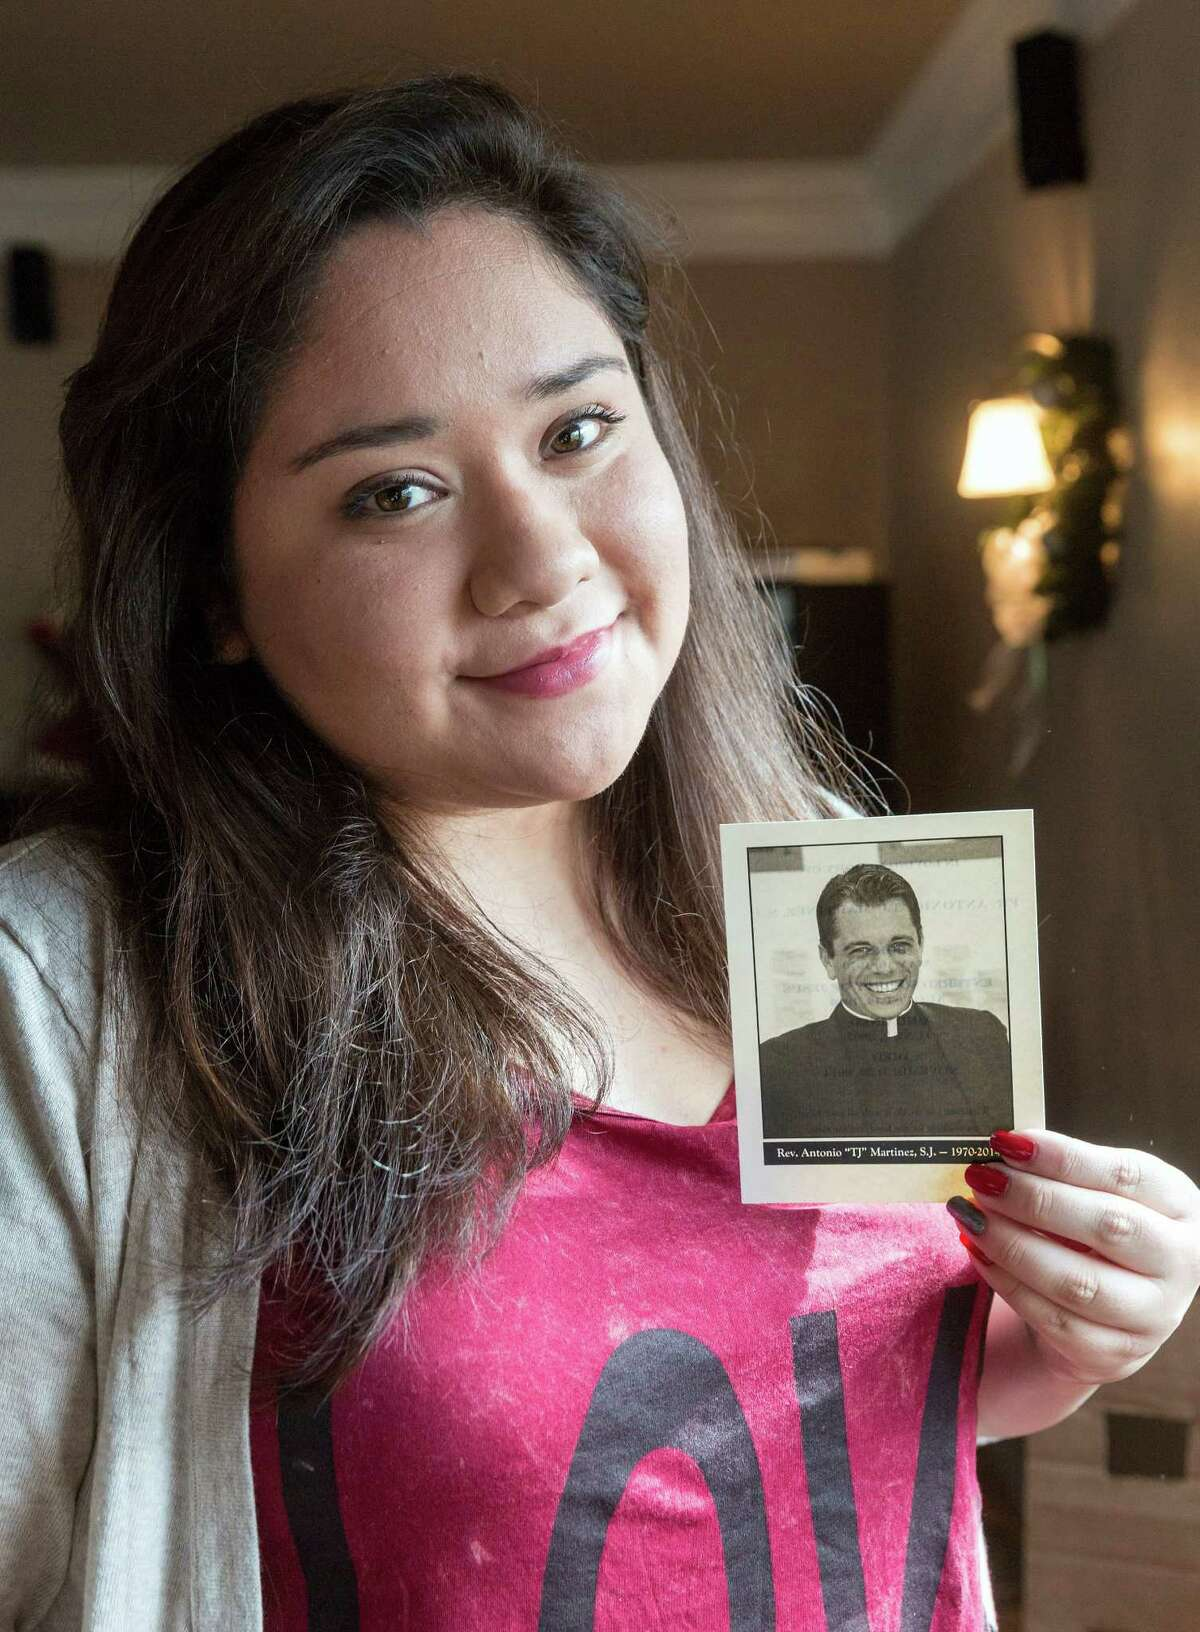 Monica Tierrablanca was a student of the late Father T.J. Martinez, founder of Houston's Cristo Rey Jesuit College Preparatory School. She says he encouraged her to seize opportunity and helped her overcome shyness.